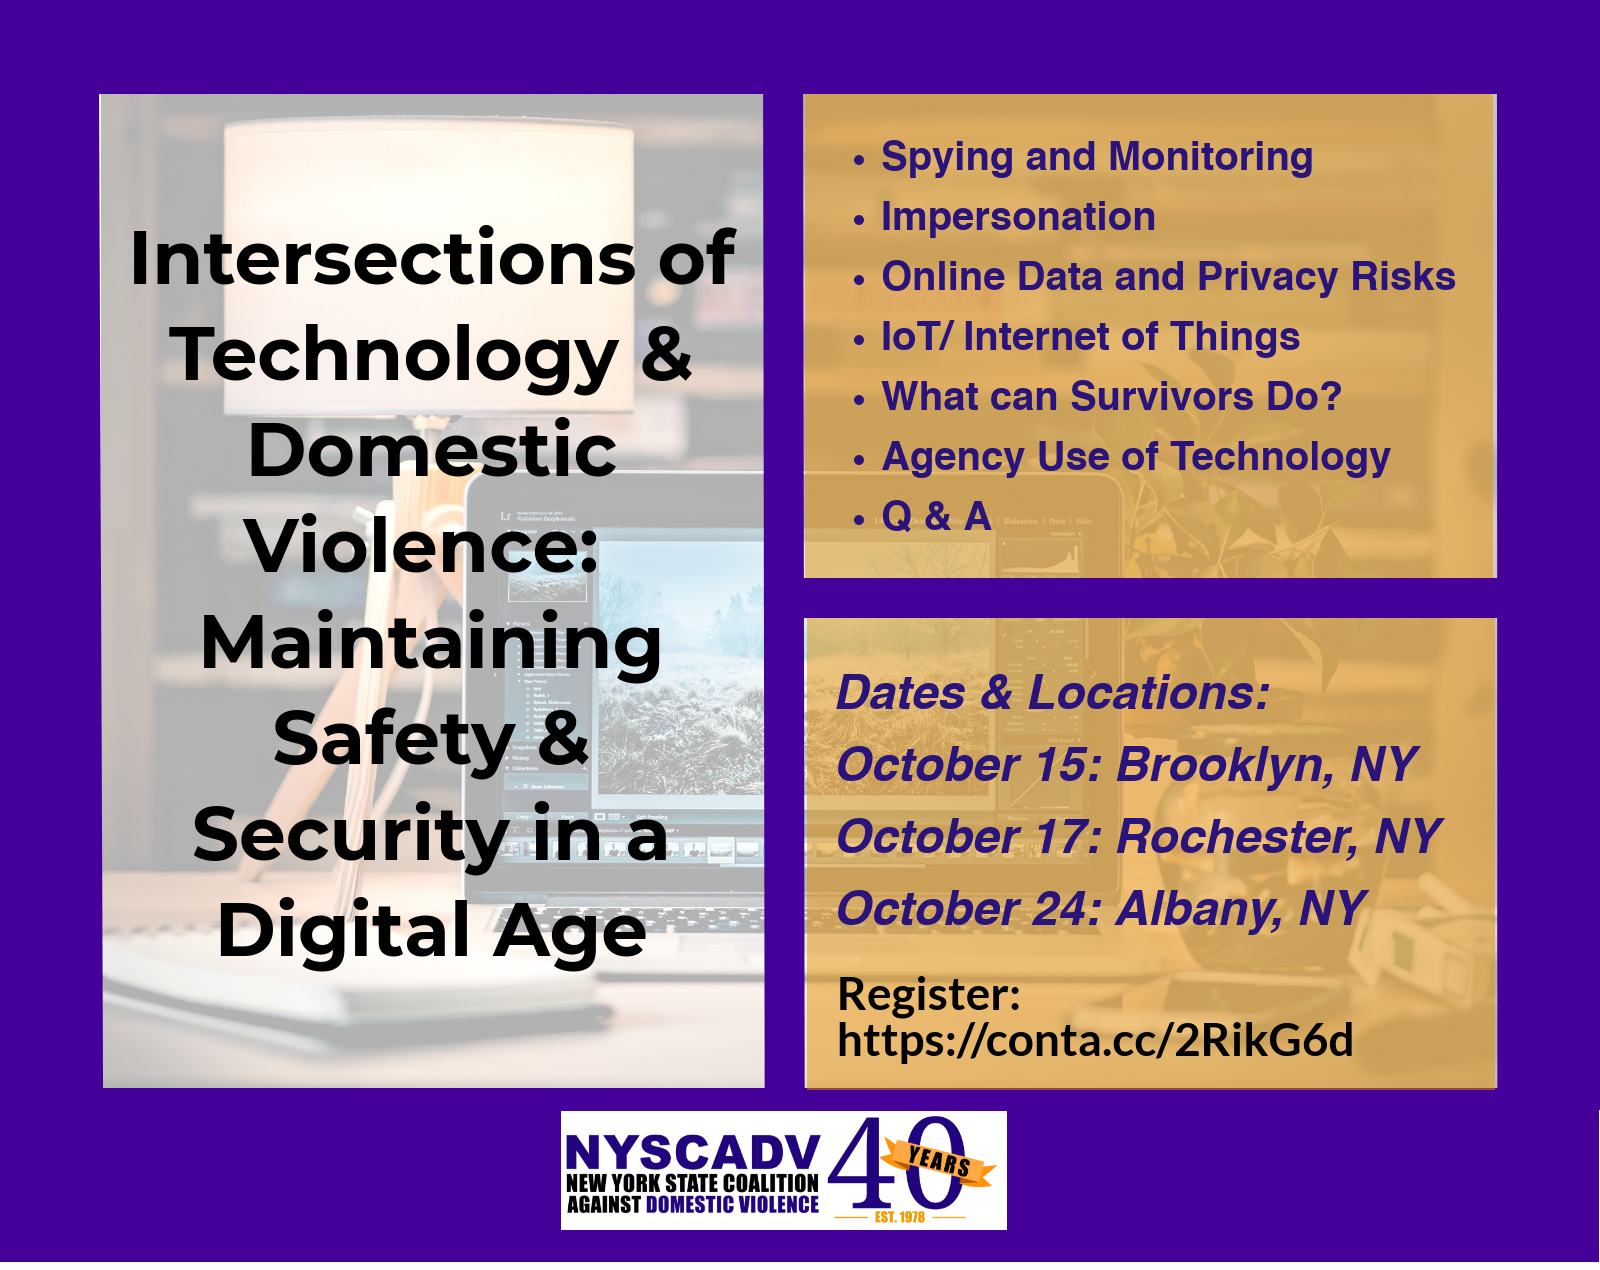 Intersections of Technology & Domestic Violence:  Maintaining Safety & Security in a Digital Age